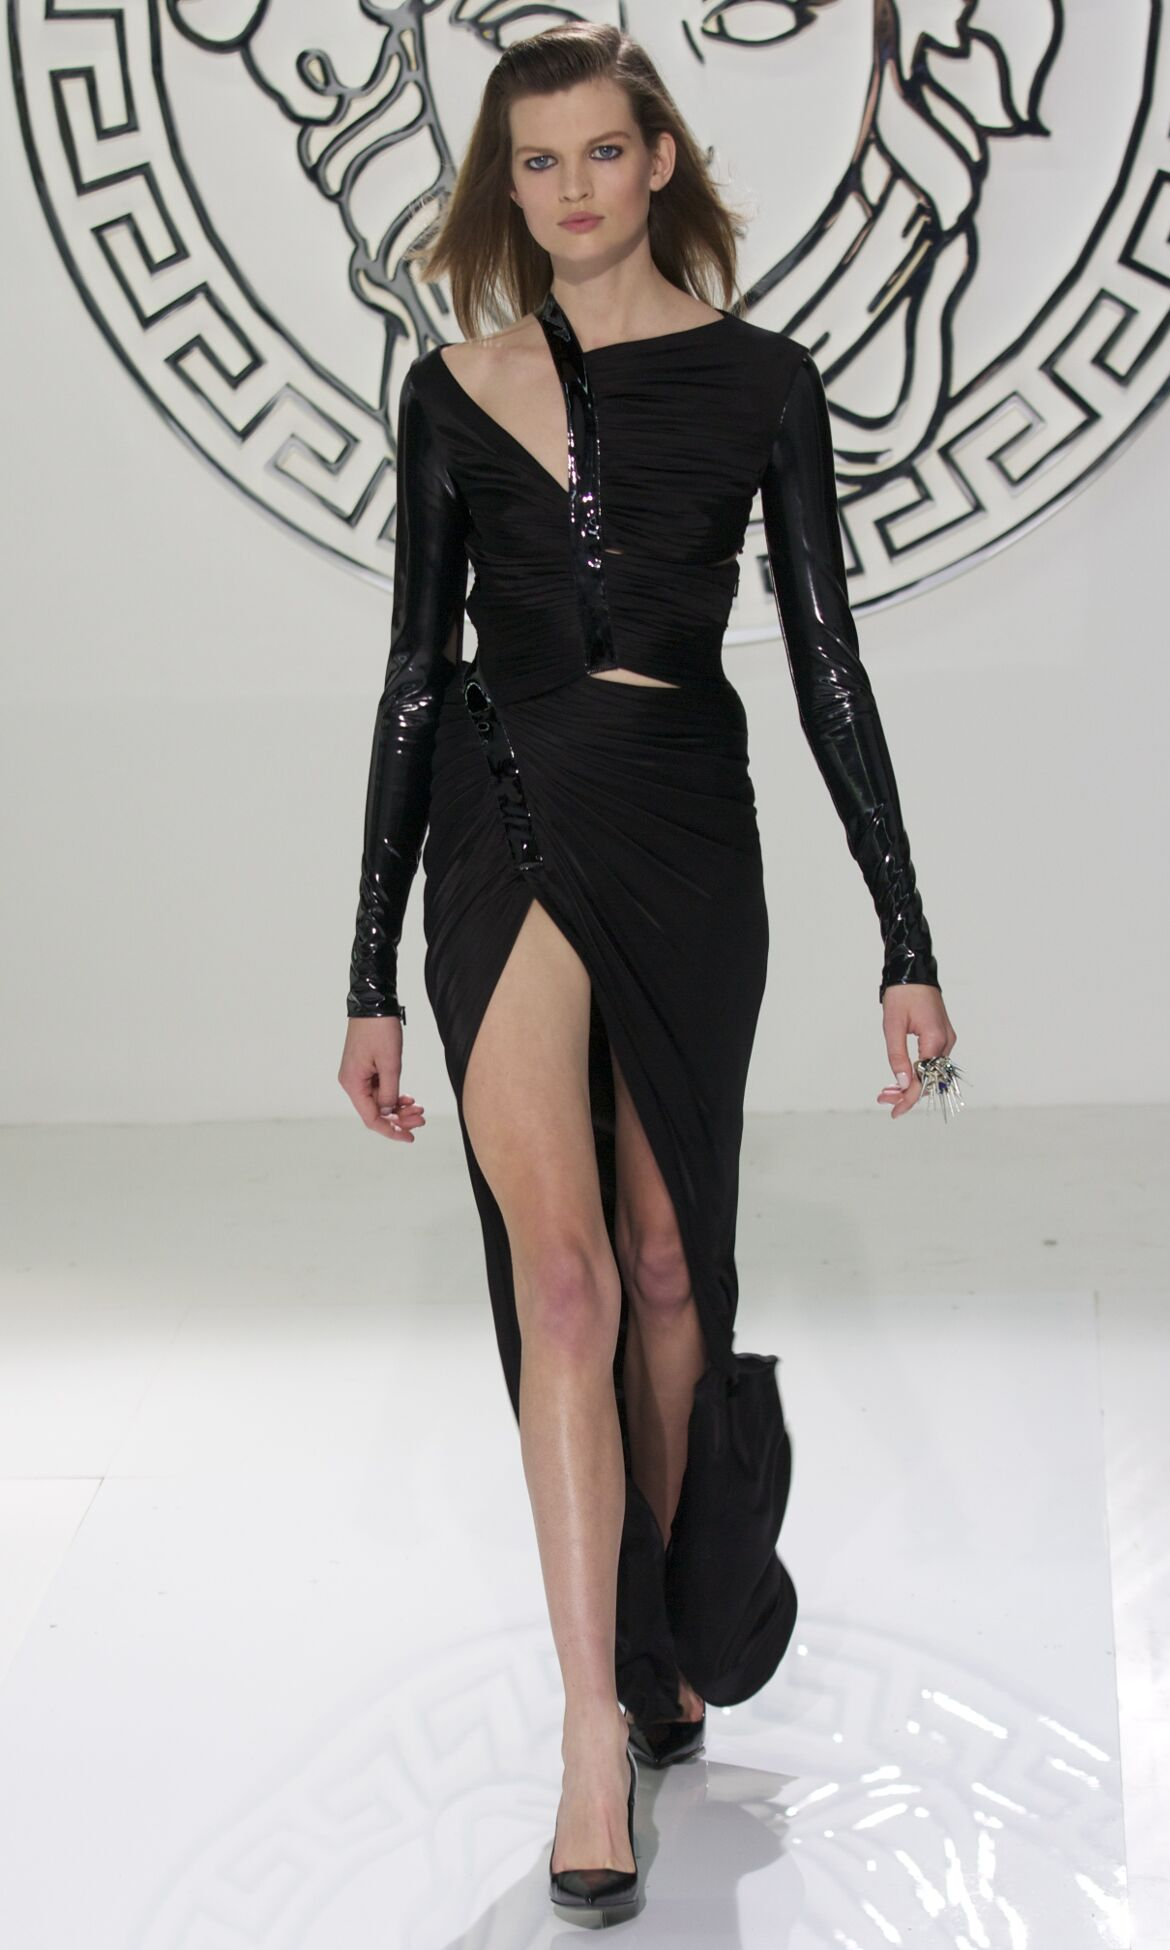 Versace Fall 2013 Catwalk